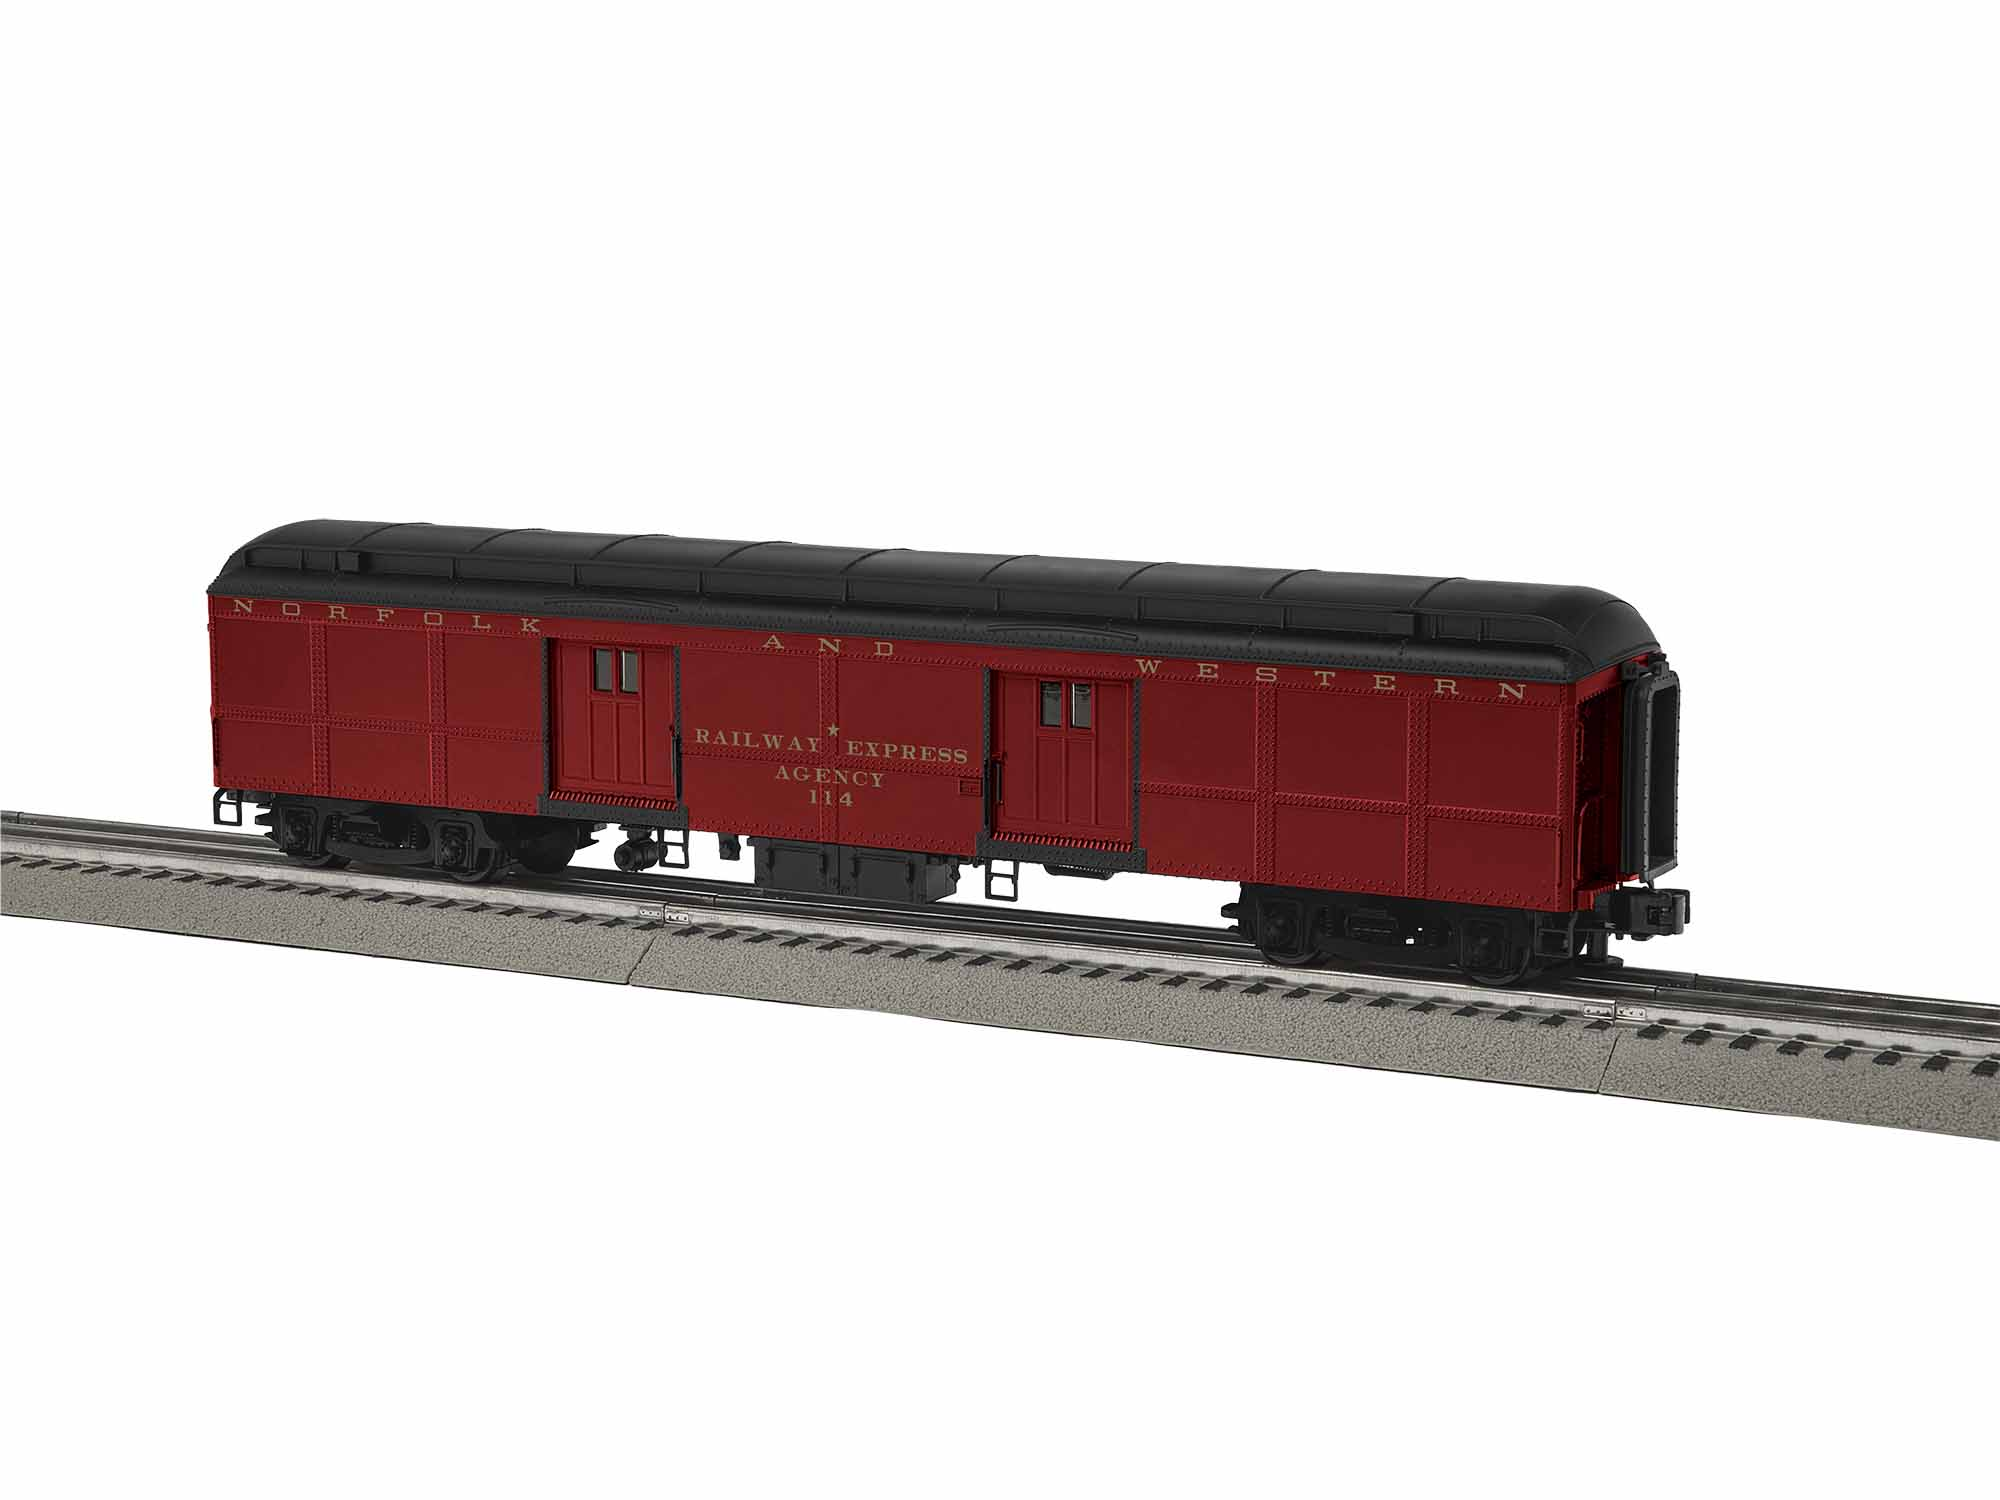 Lionel 1927243 O Heavyweight Baggage Car 3-Rail Norfolk & Western 112 434-1927243